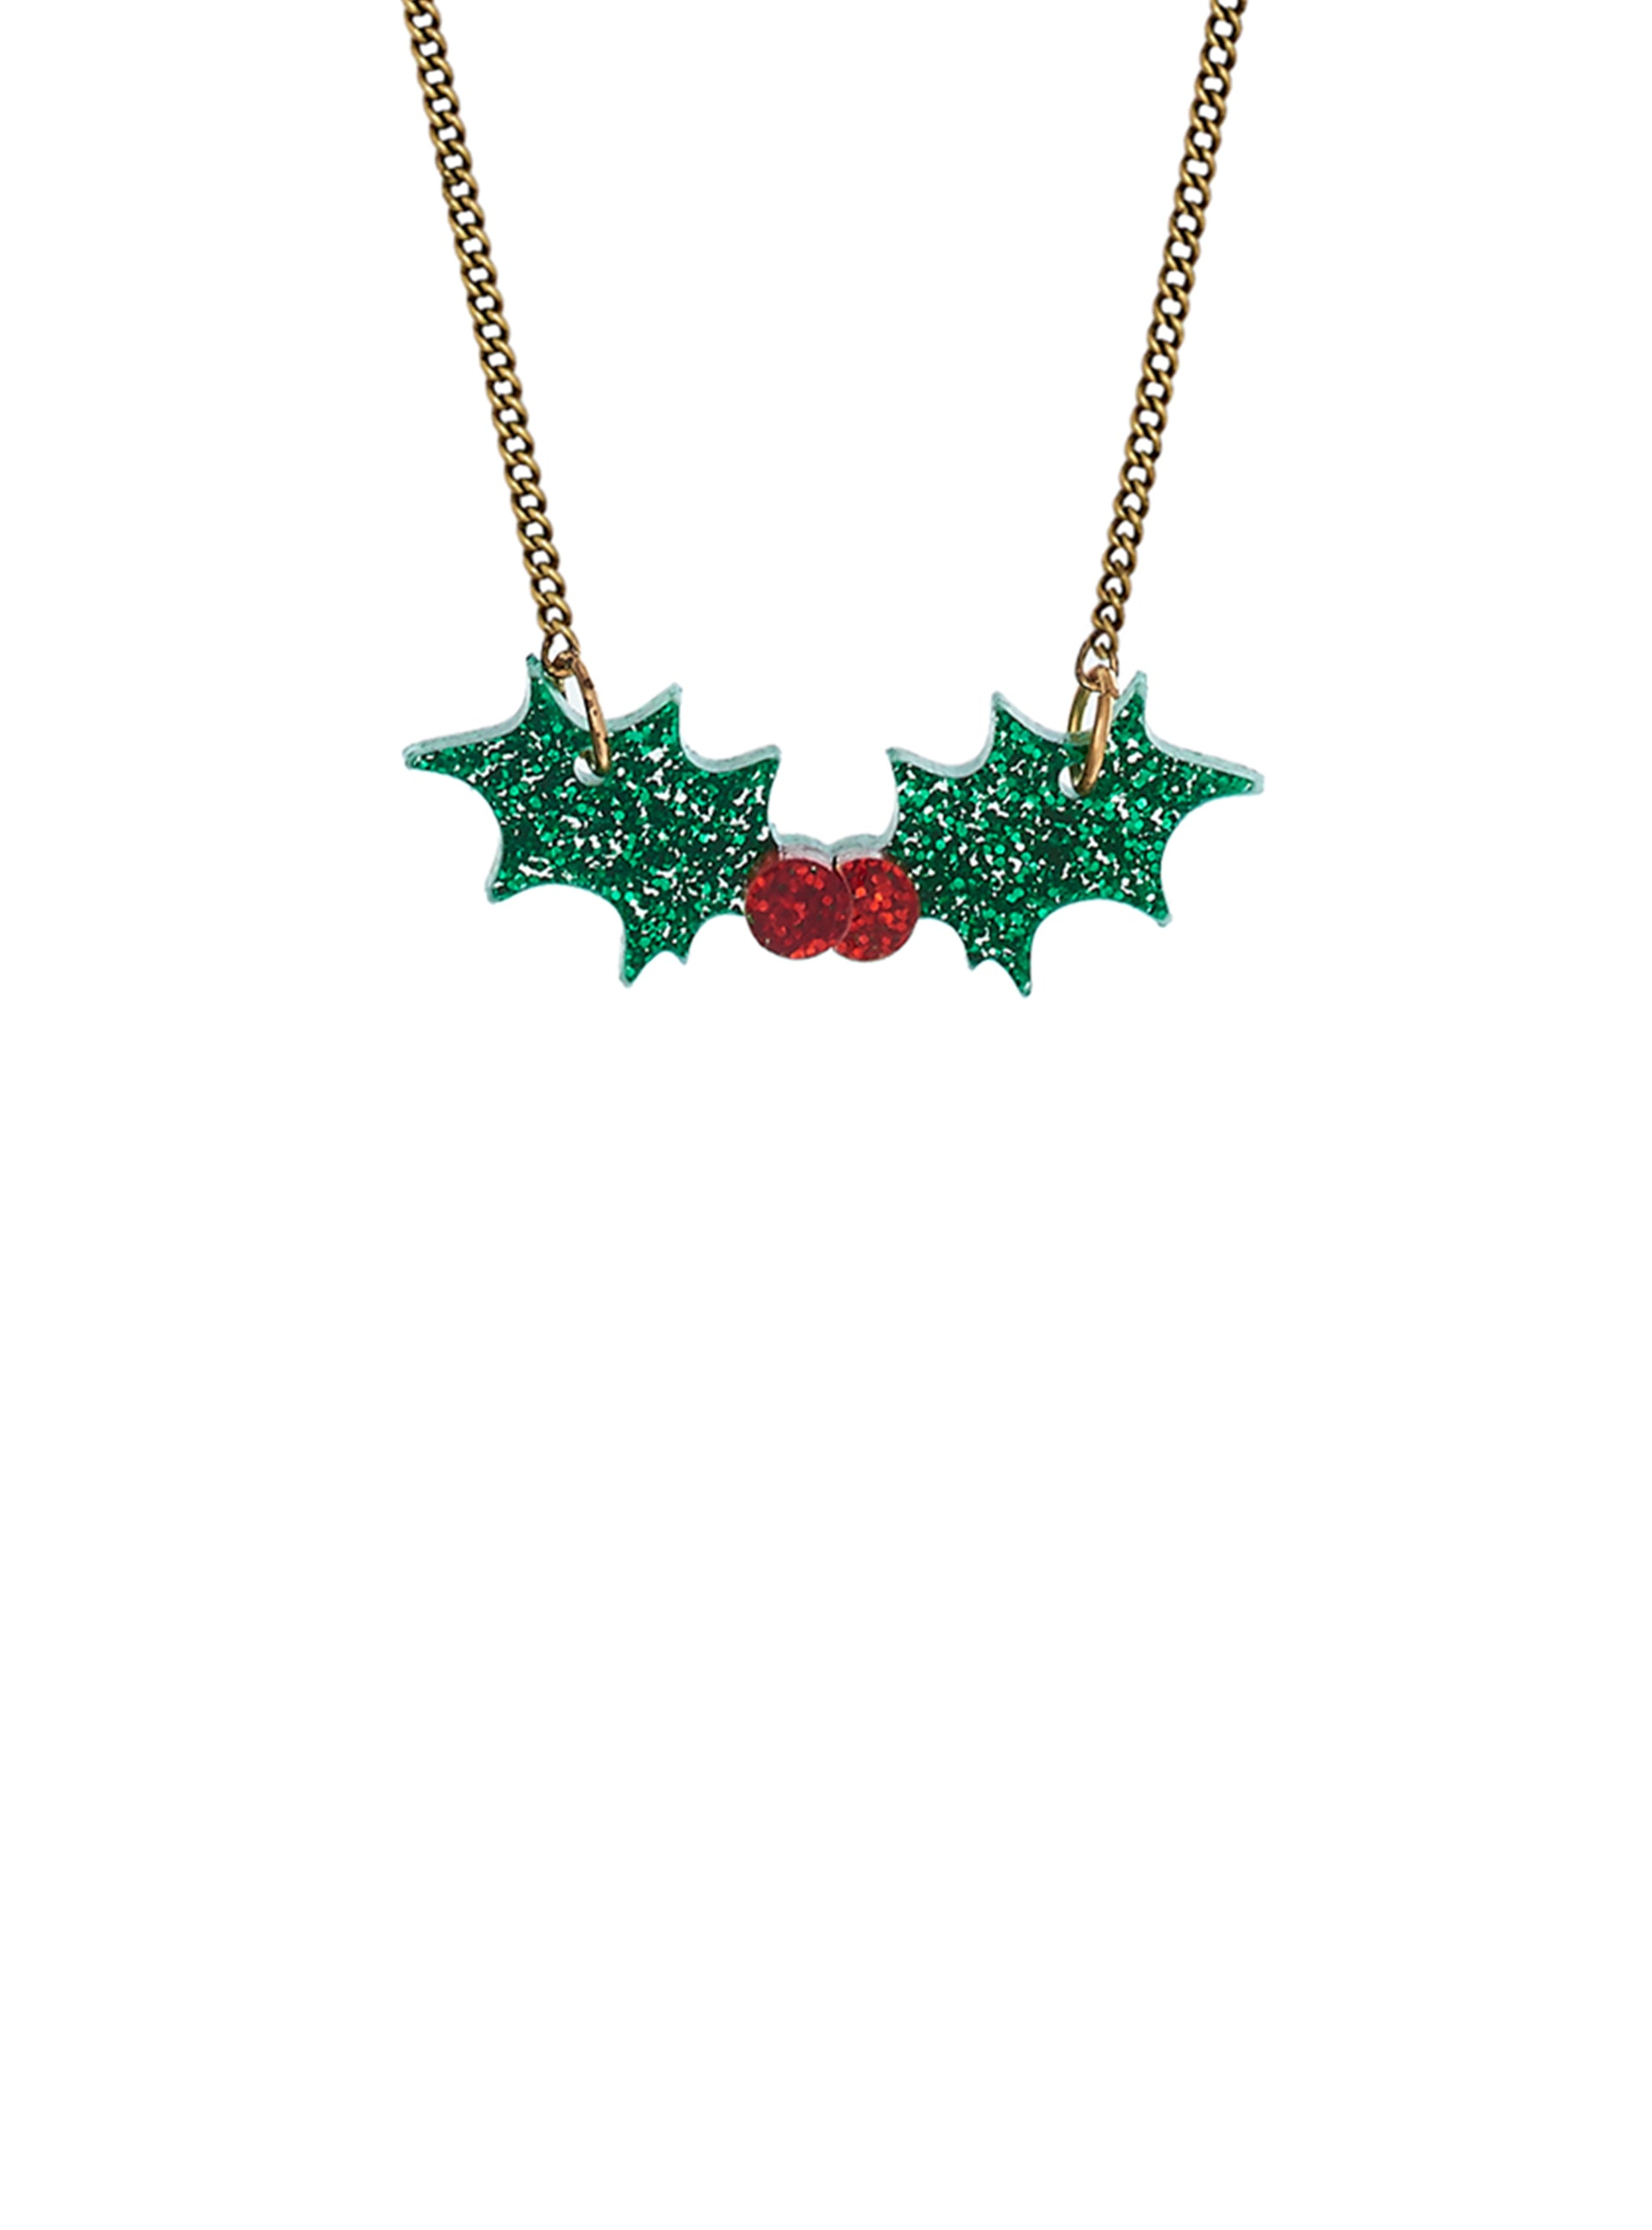 Holly Necklace - Glitter Green